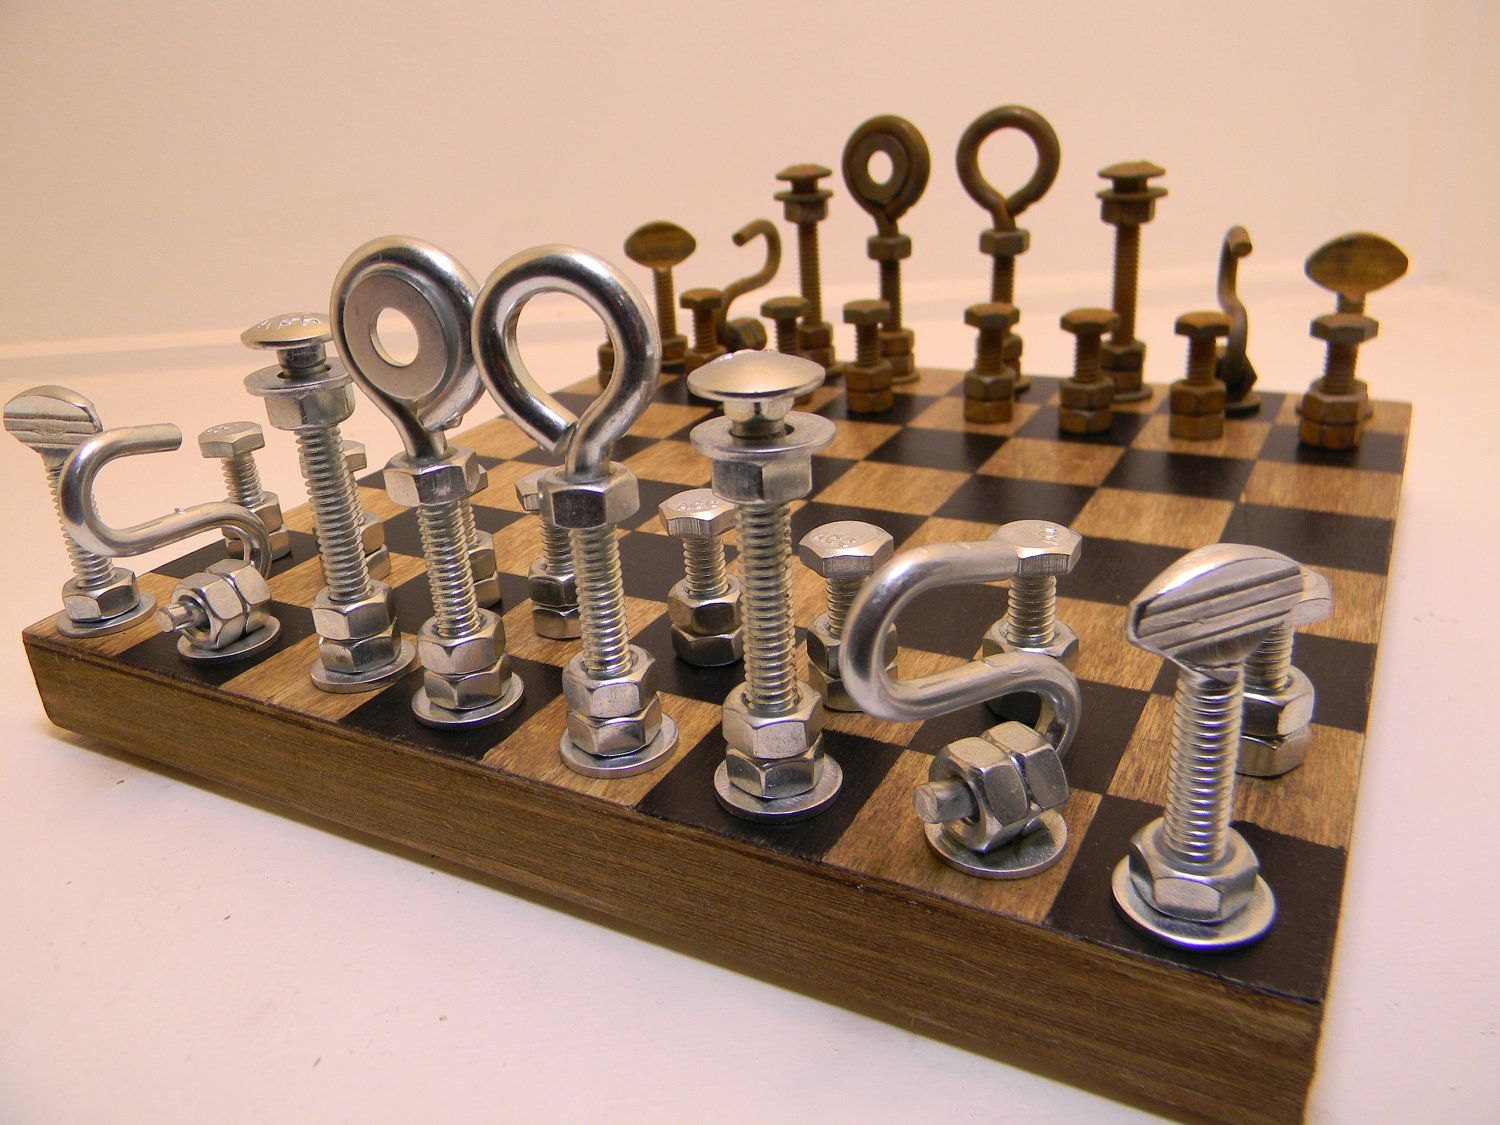 Chest Game Set Hardware Chess Set Chess Sets Chess And Hardware